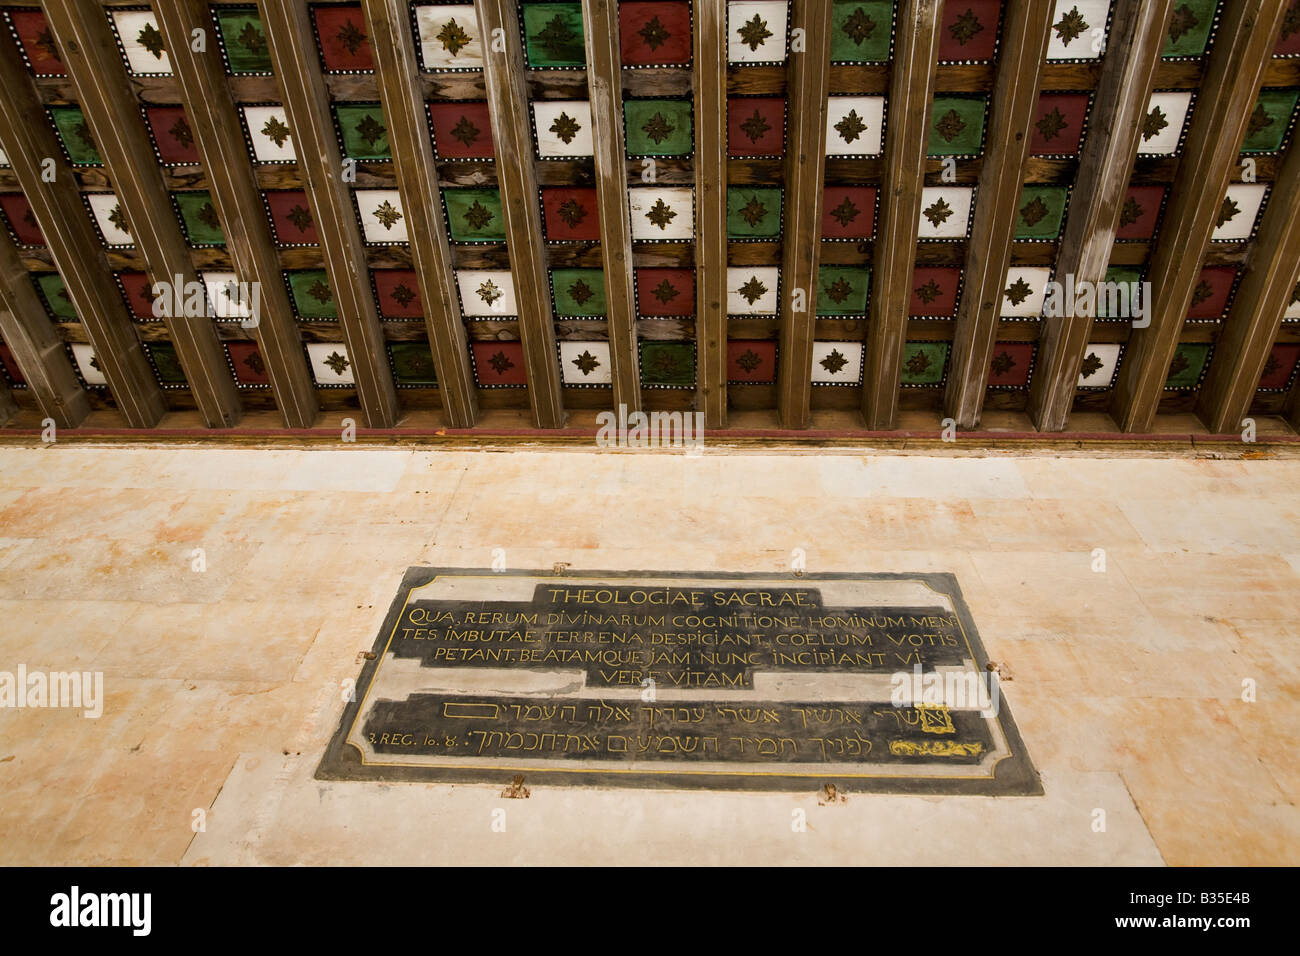 SPAIN Salamanca Coffered ceiling in Mudejar style plaque for lecture hall in university building oldest in Spain - Stock Image